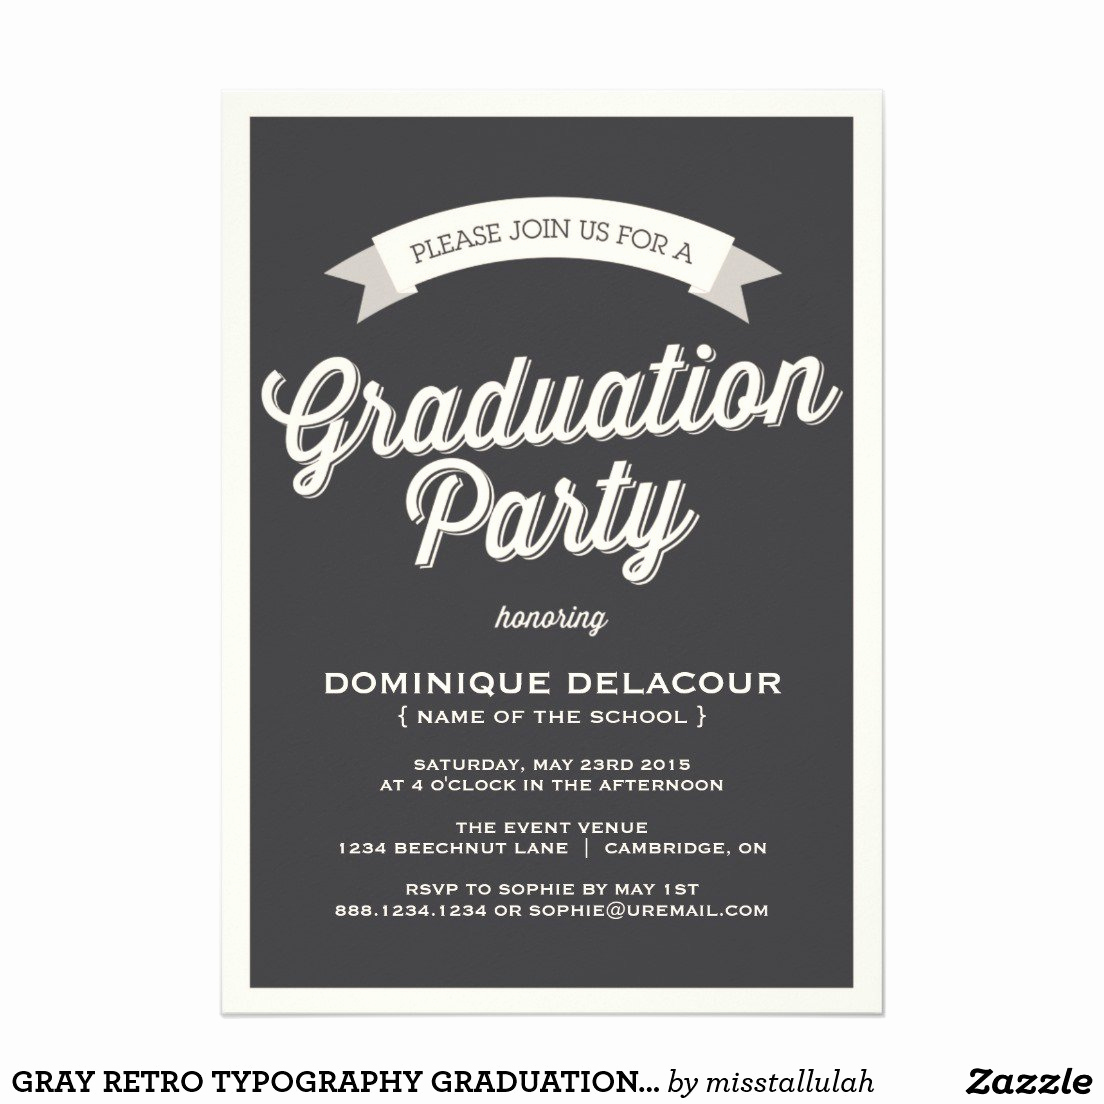 Graduation Luncheon Invitation Wording Beautiful Graduation Dinner Invitation Wording